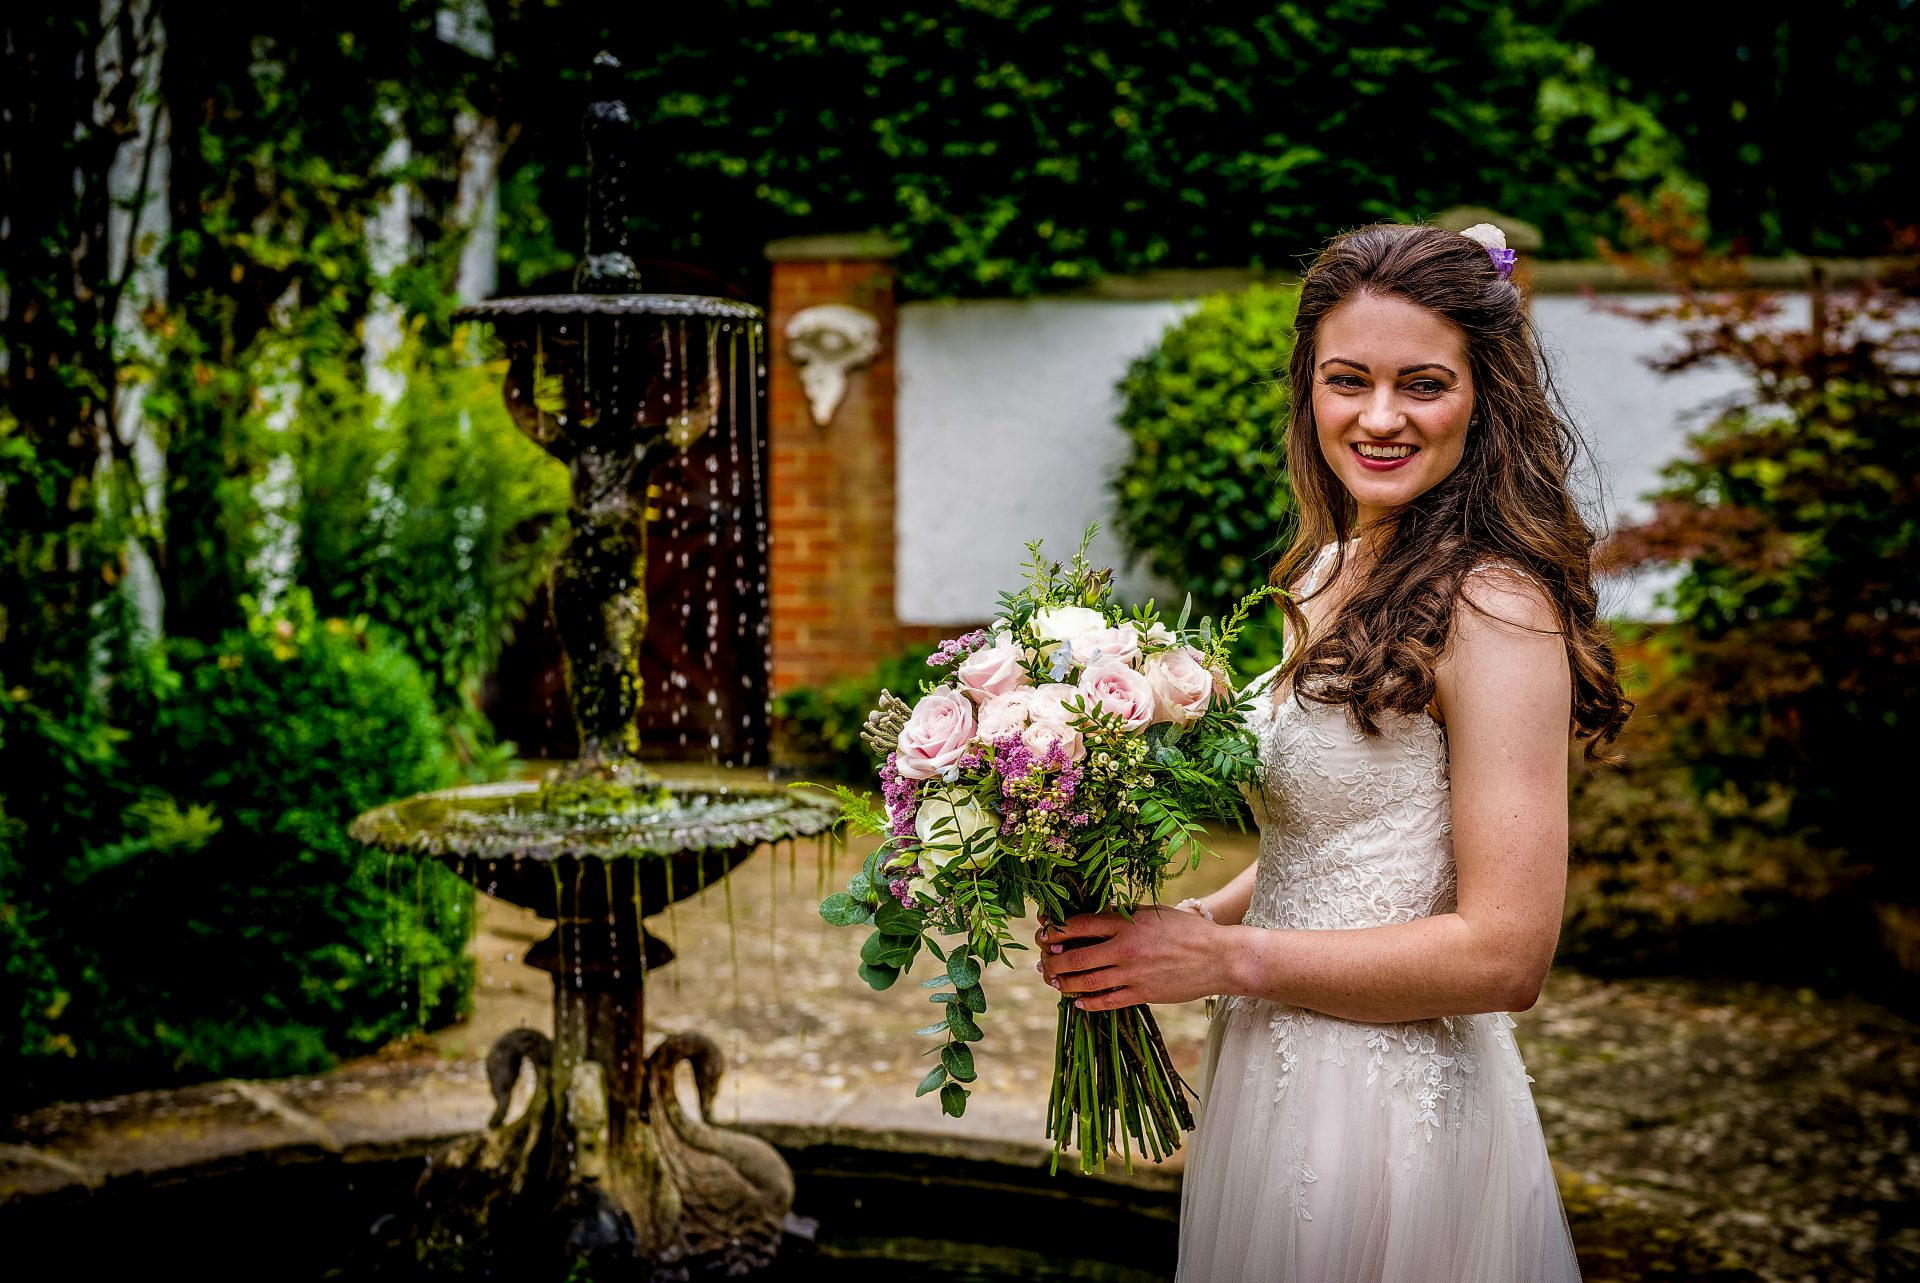 YFFUK Phil Endicott Johnson Stanwick Hotel Courtyard Northamptonshire bride showing her bouquet by the water fountain